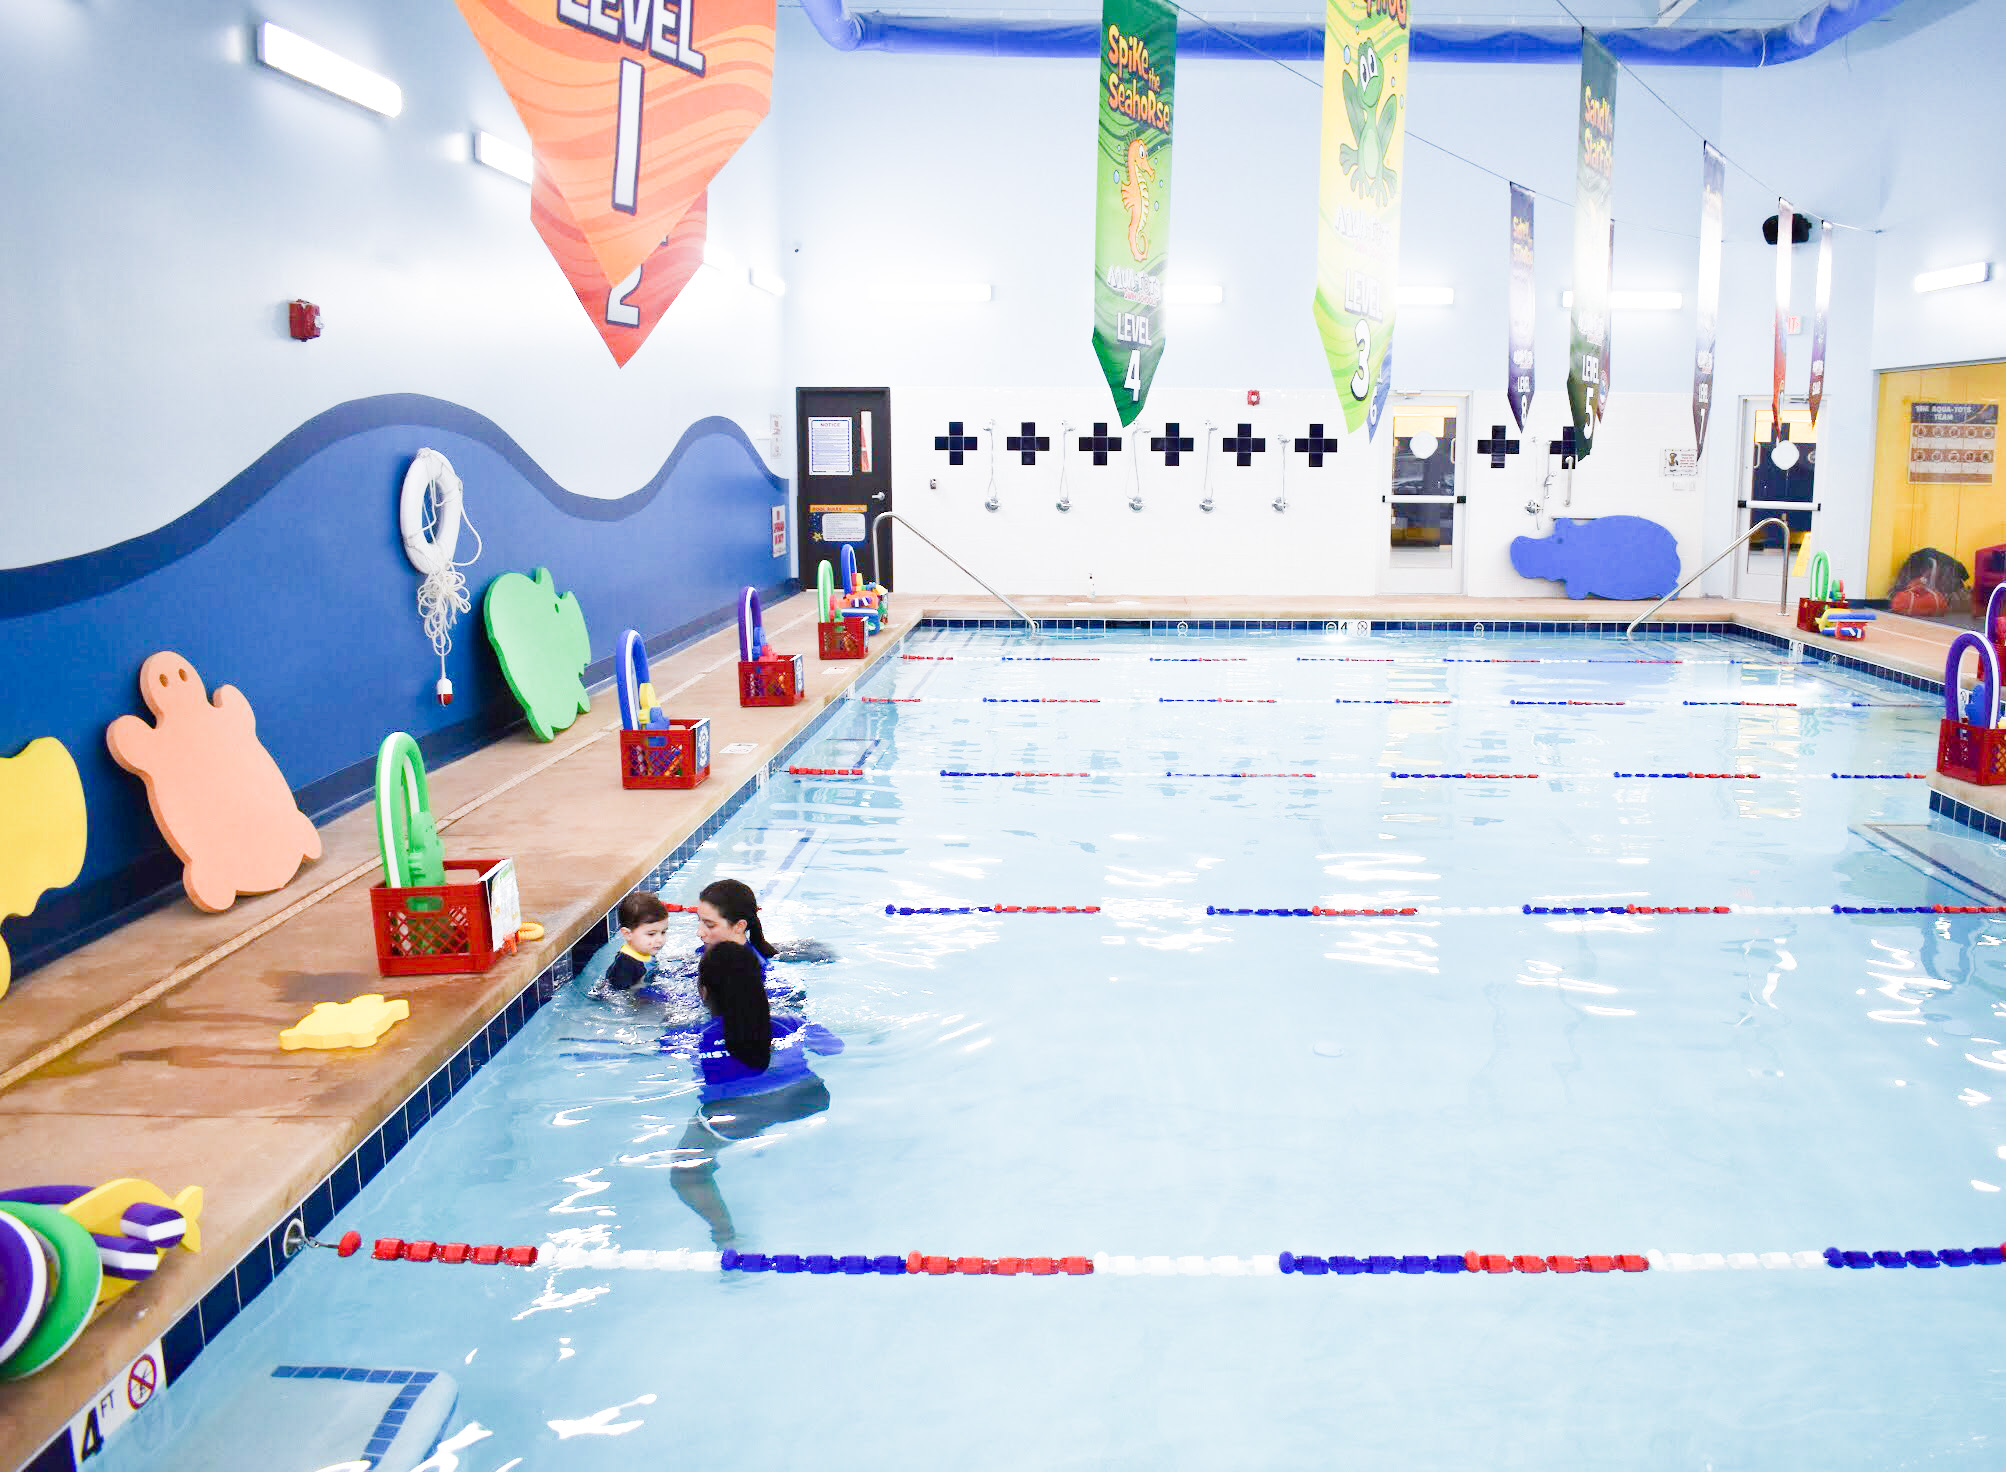 What to Expect at Baby Swim Lessons: Prepare yourself and your child for their first swim lesson with these tips! My infant and preschooler take lessons at Aqua-Tots Swim School in Olathe, KS. Here's what I learned from the pros about baby swim lessons and getting kids acclimated to the water!